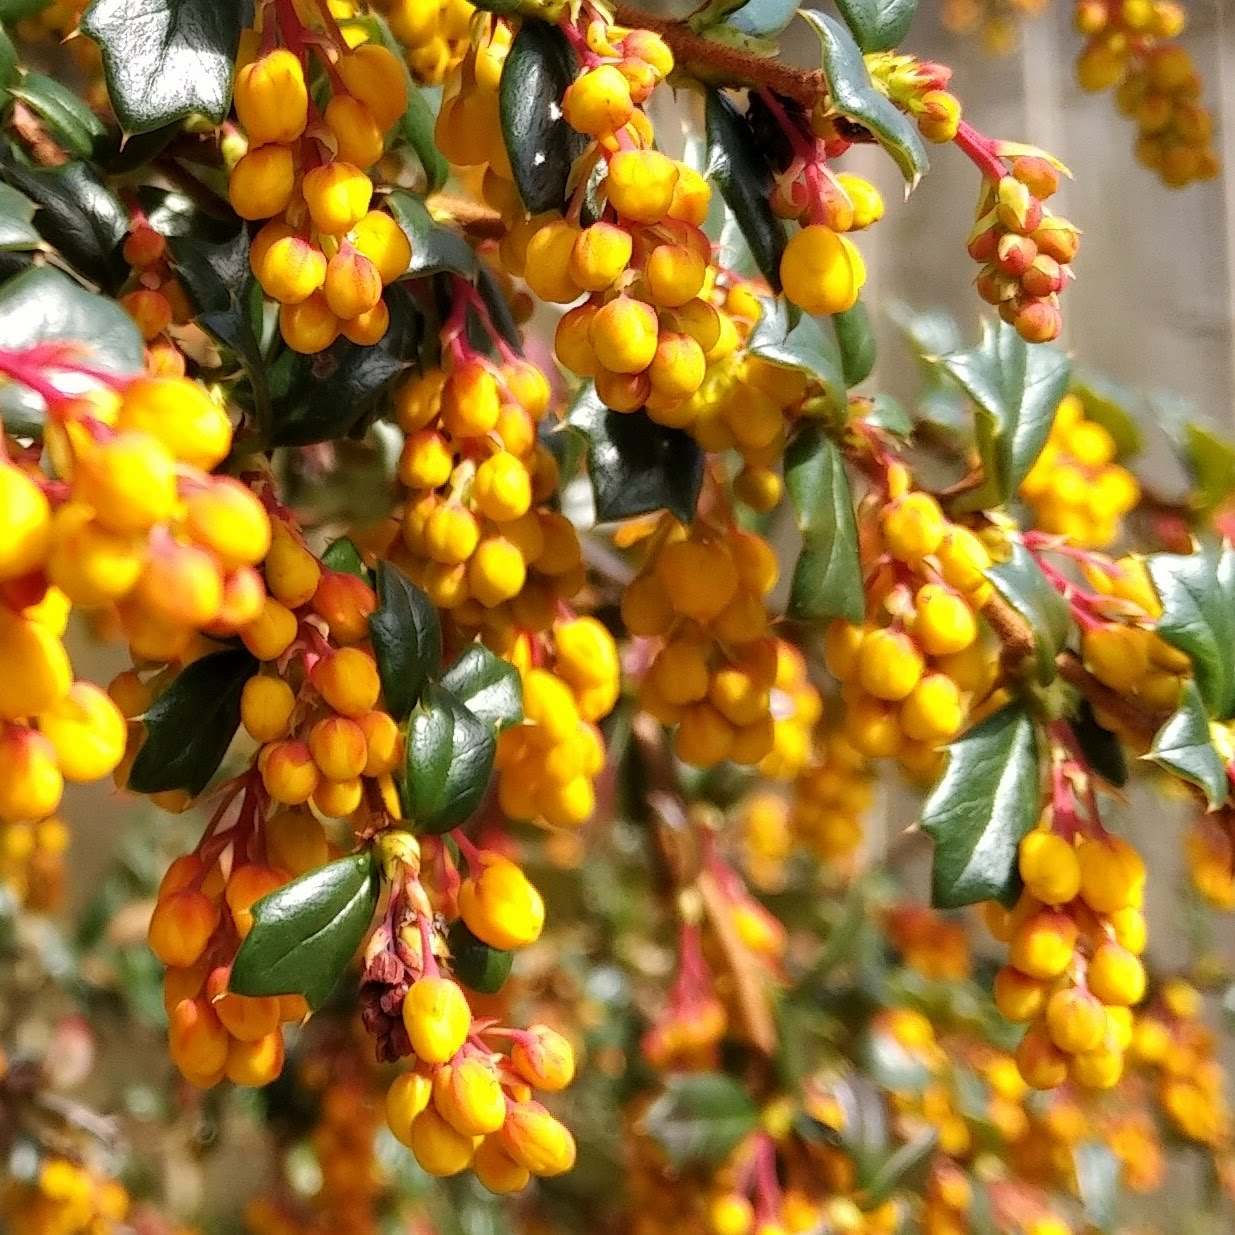 Berberis flower